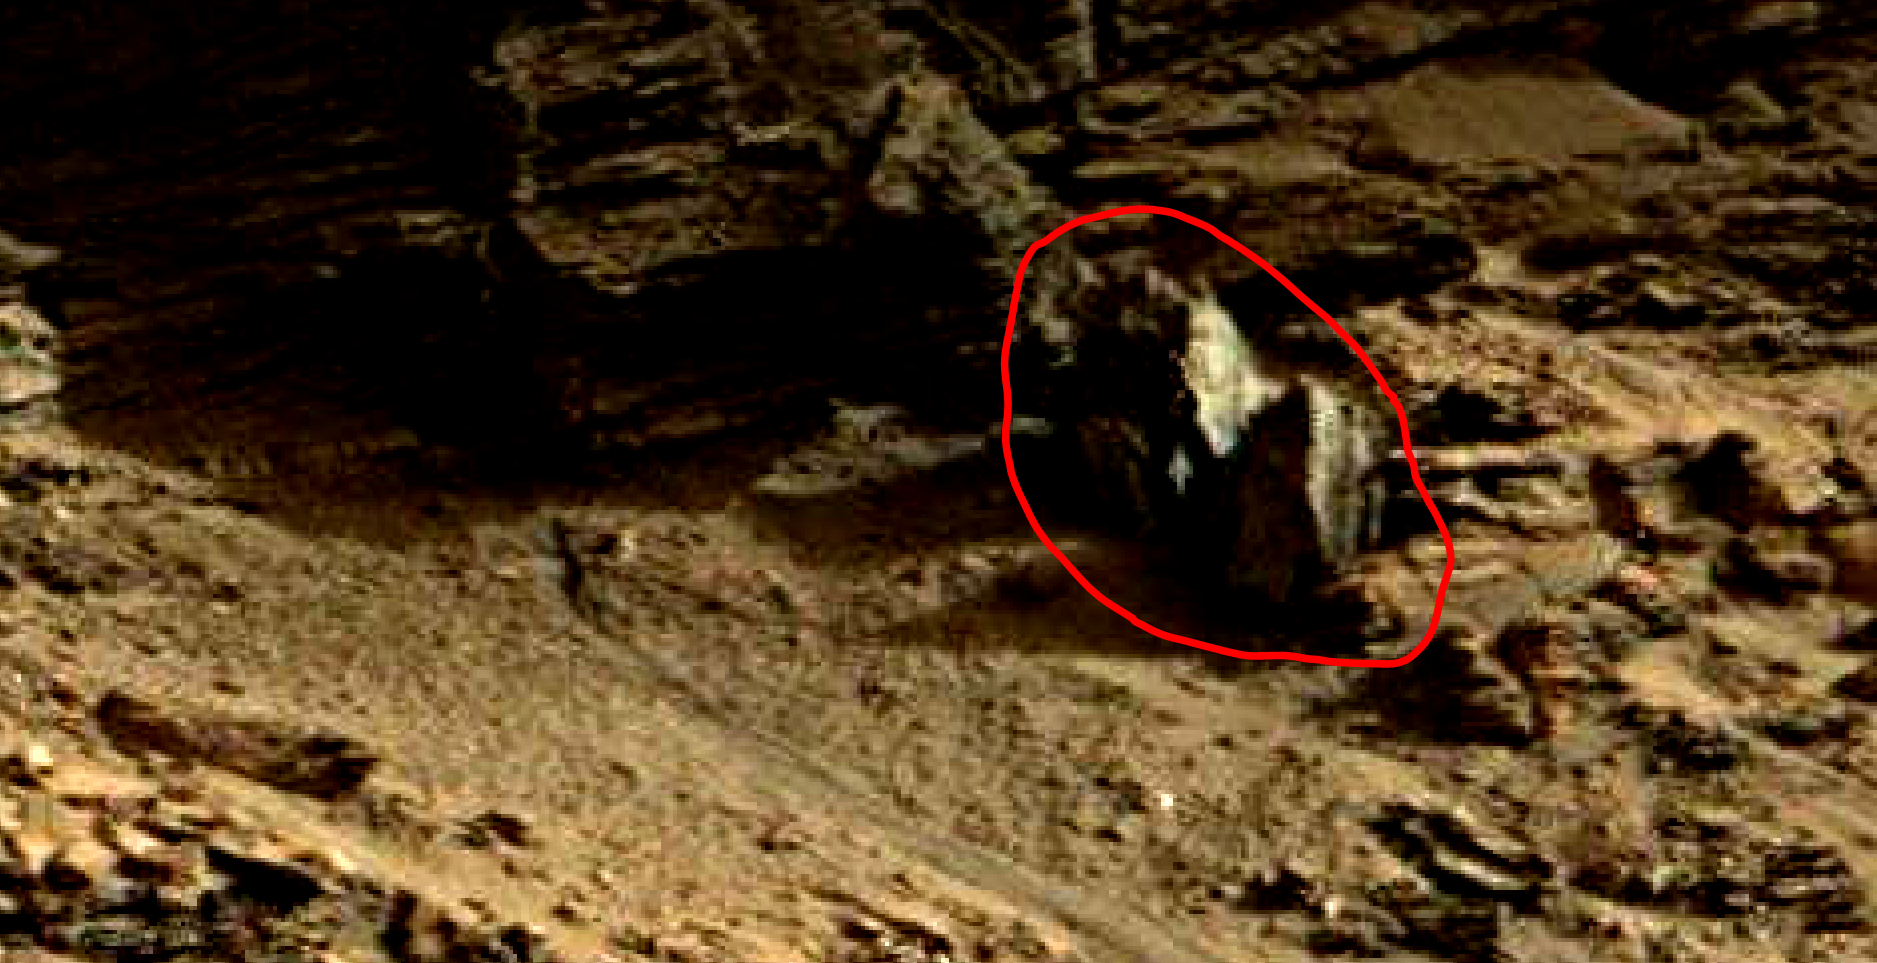 mars sol 1419 anomaly artifacts 17 was life on mars